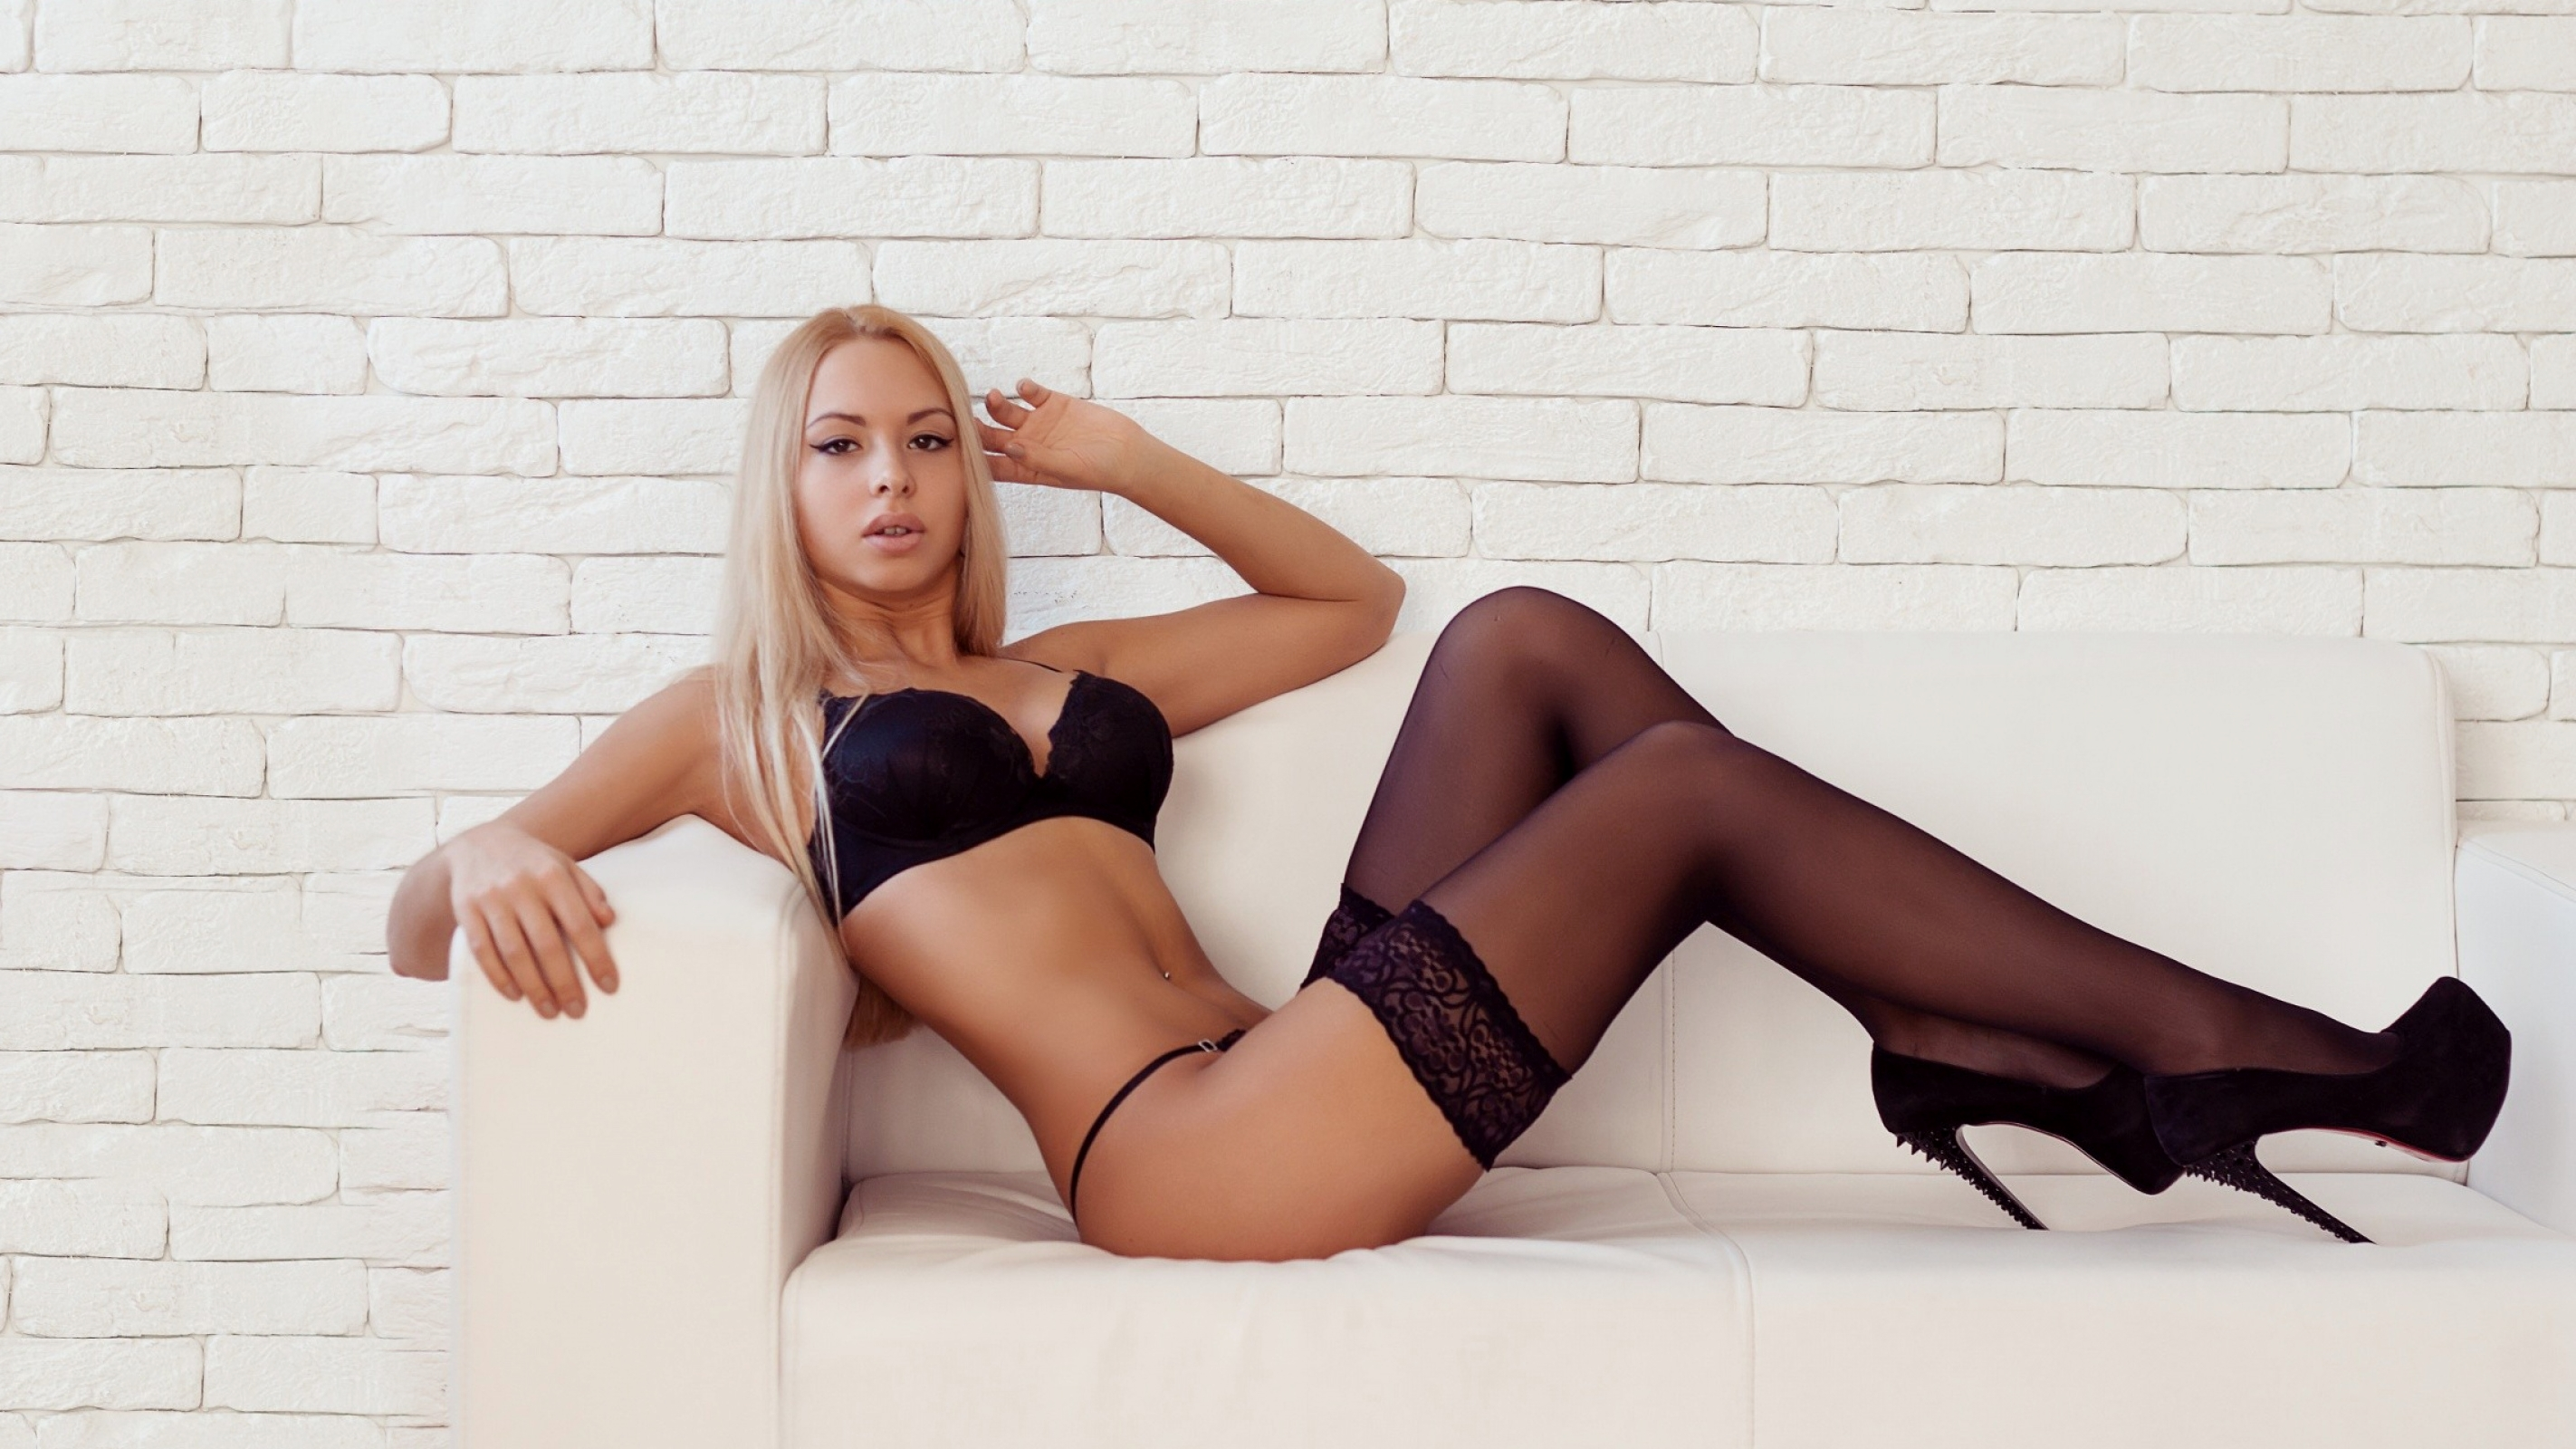 Sexy models lingerie high heels charming